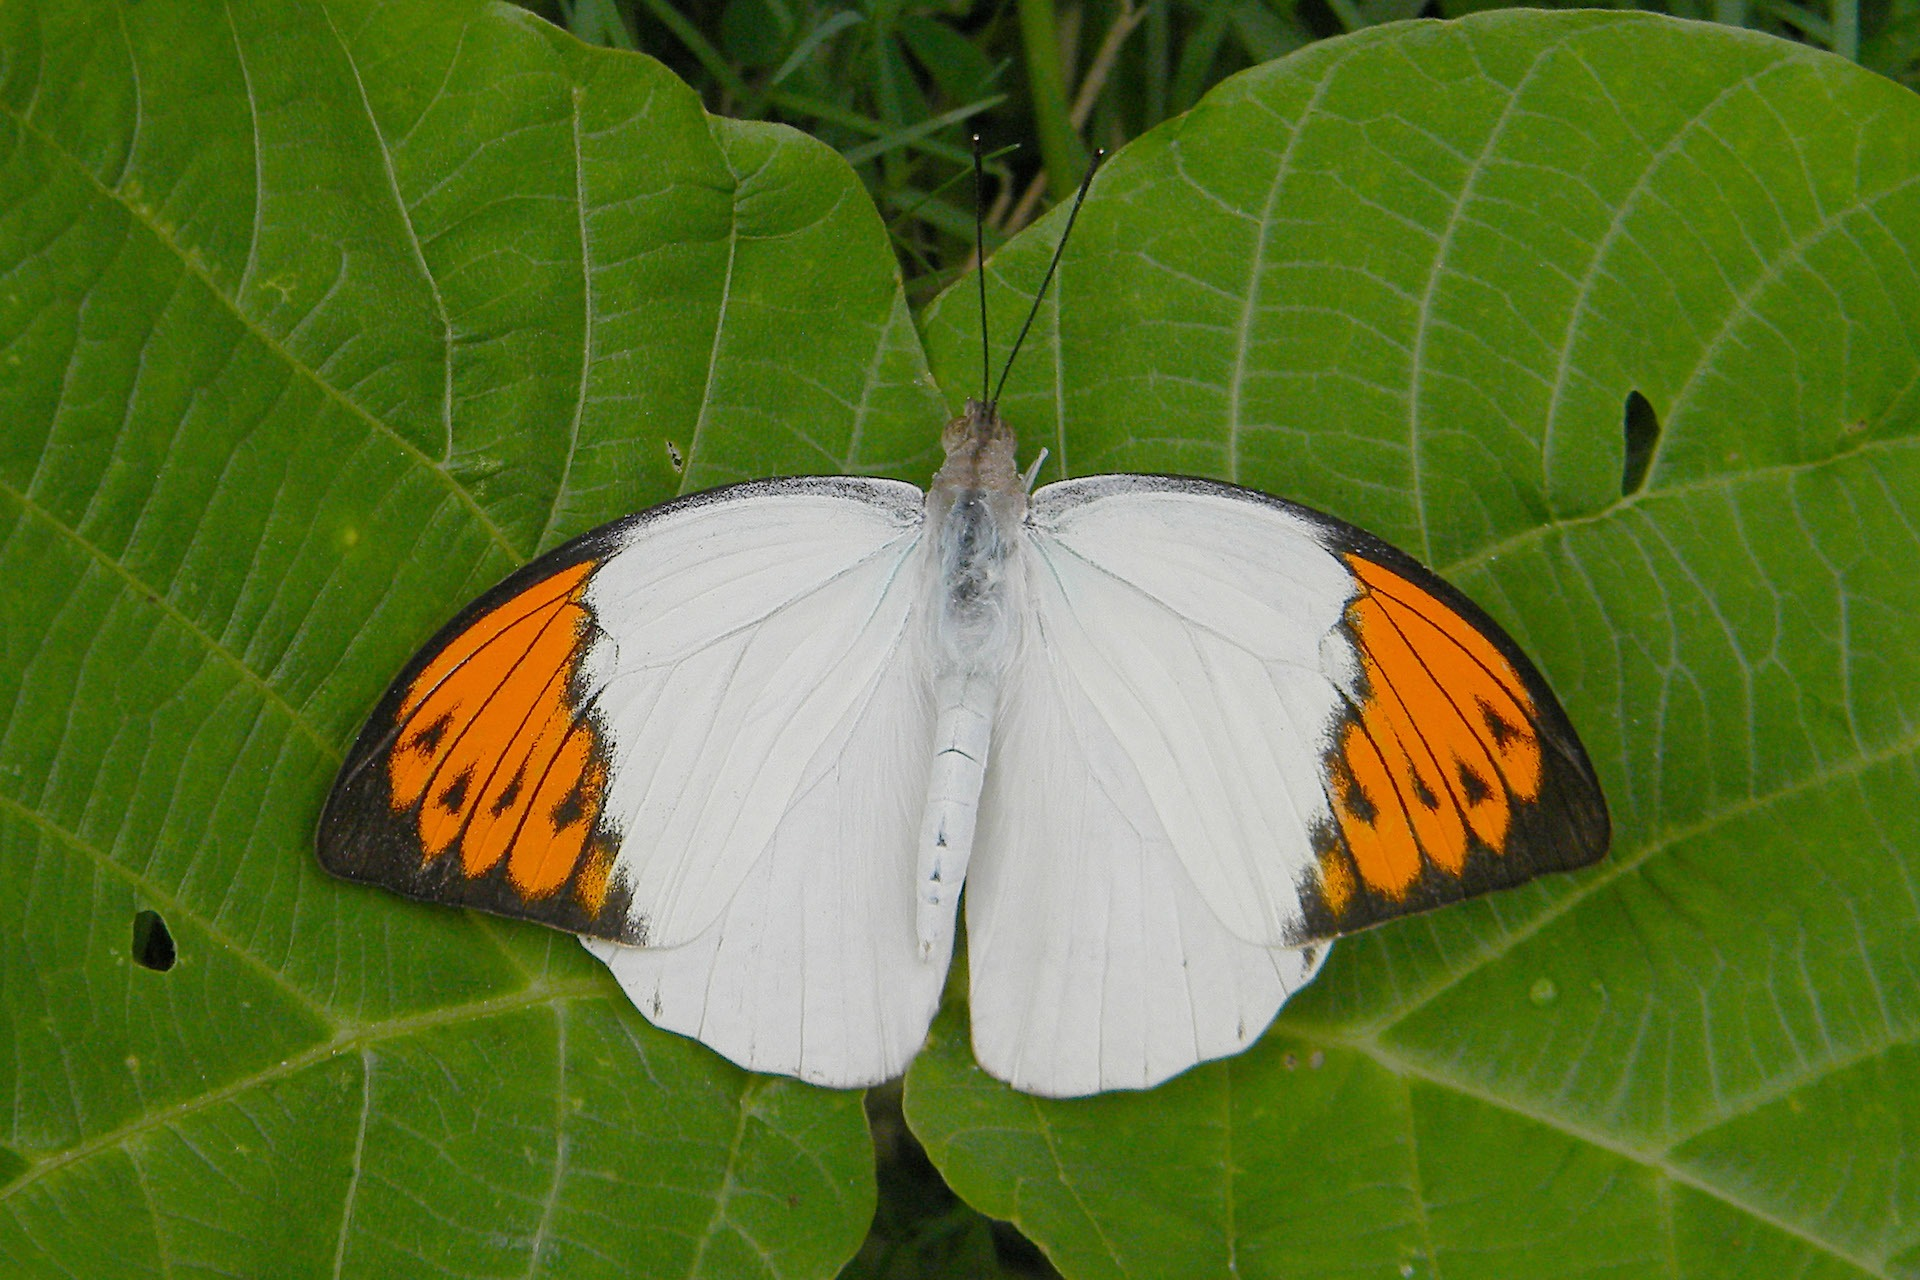 The great orange tip belongs to a family of butterflies called Pieridae. Most butterflies within this subgroup are a combination of yellow, white and/ or orange in colour. Photo: Subhajit Mazumder-CC BY-SA 4.0  The great orange tip has striking, bright forewings, but its undersides are dull, and look like a dry leaf. When it perches on the ground with its wings closed, it often looks like dead leaf. This protects it from predators. Photo: Sathya K Selvam-CC BY-SA 4.0